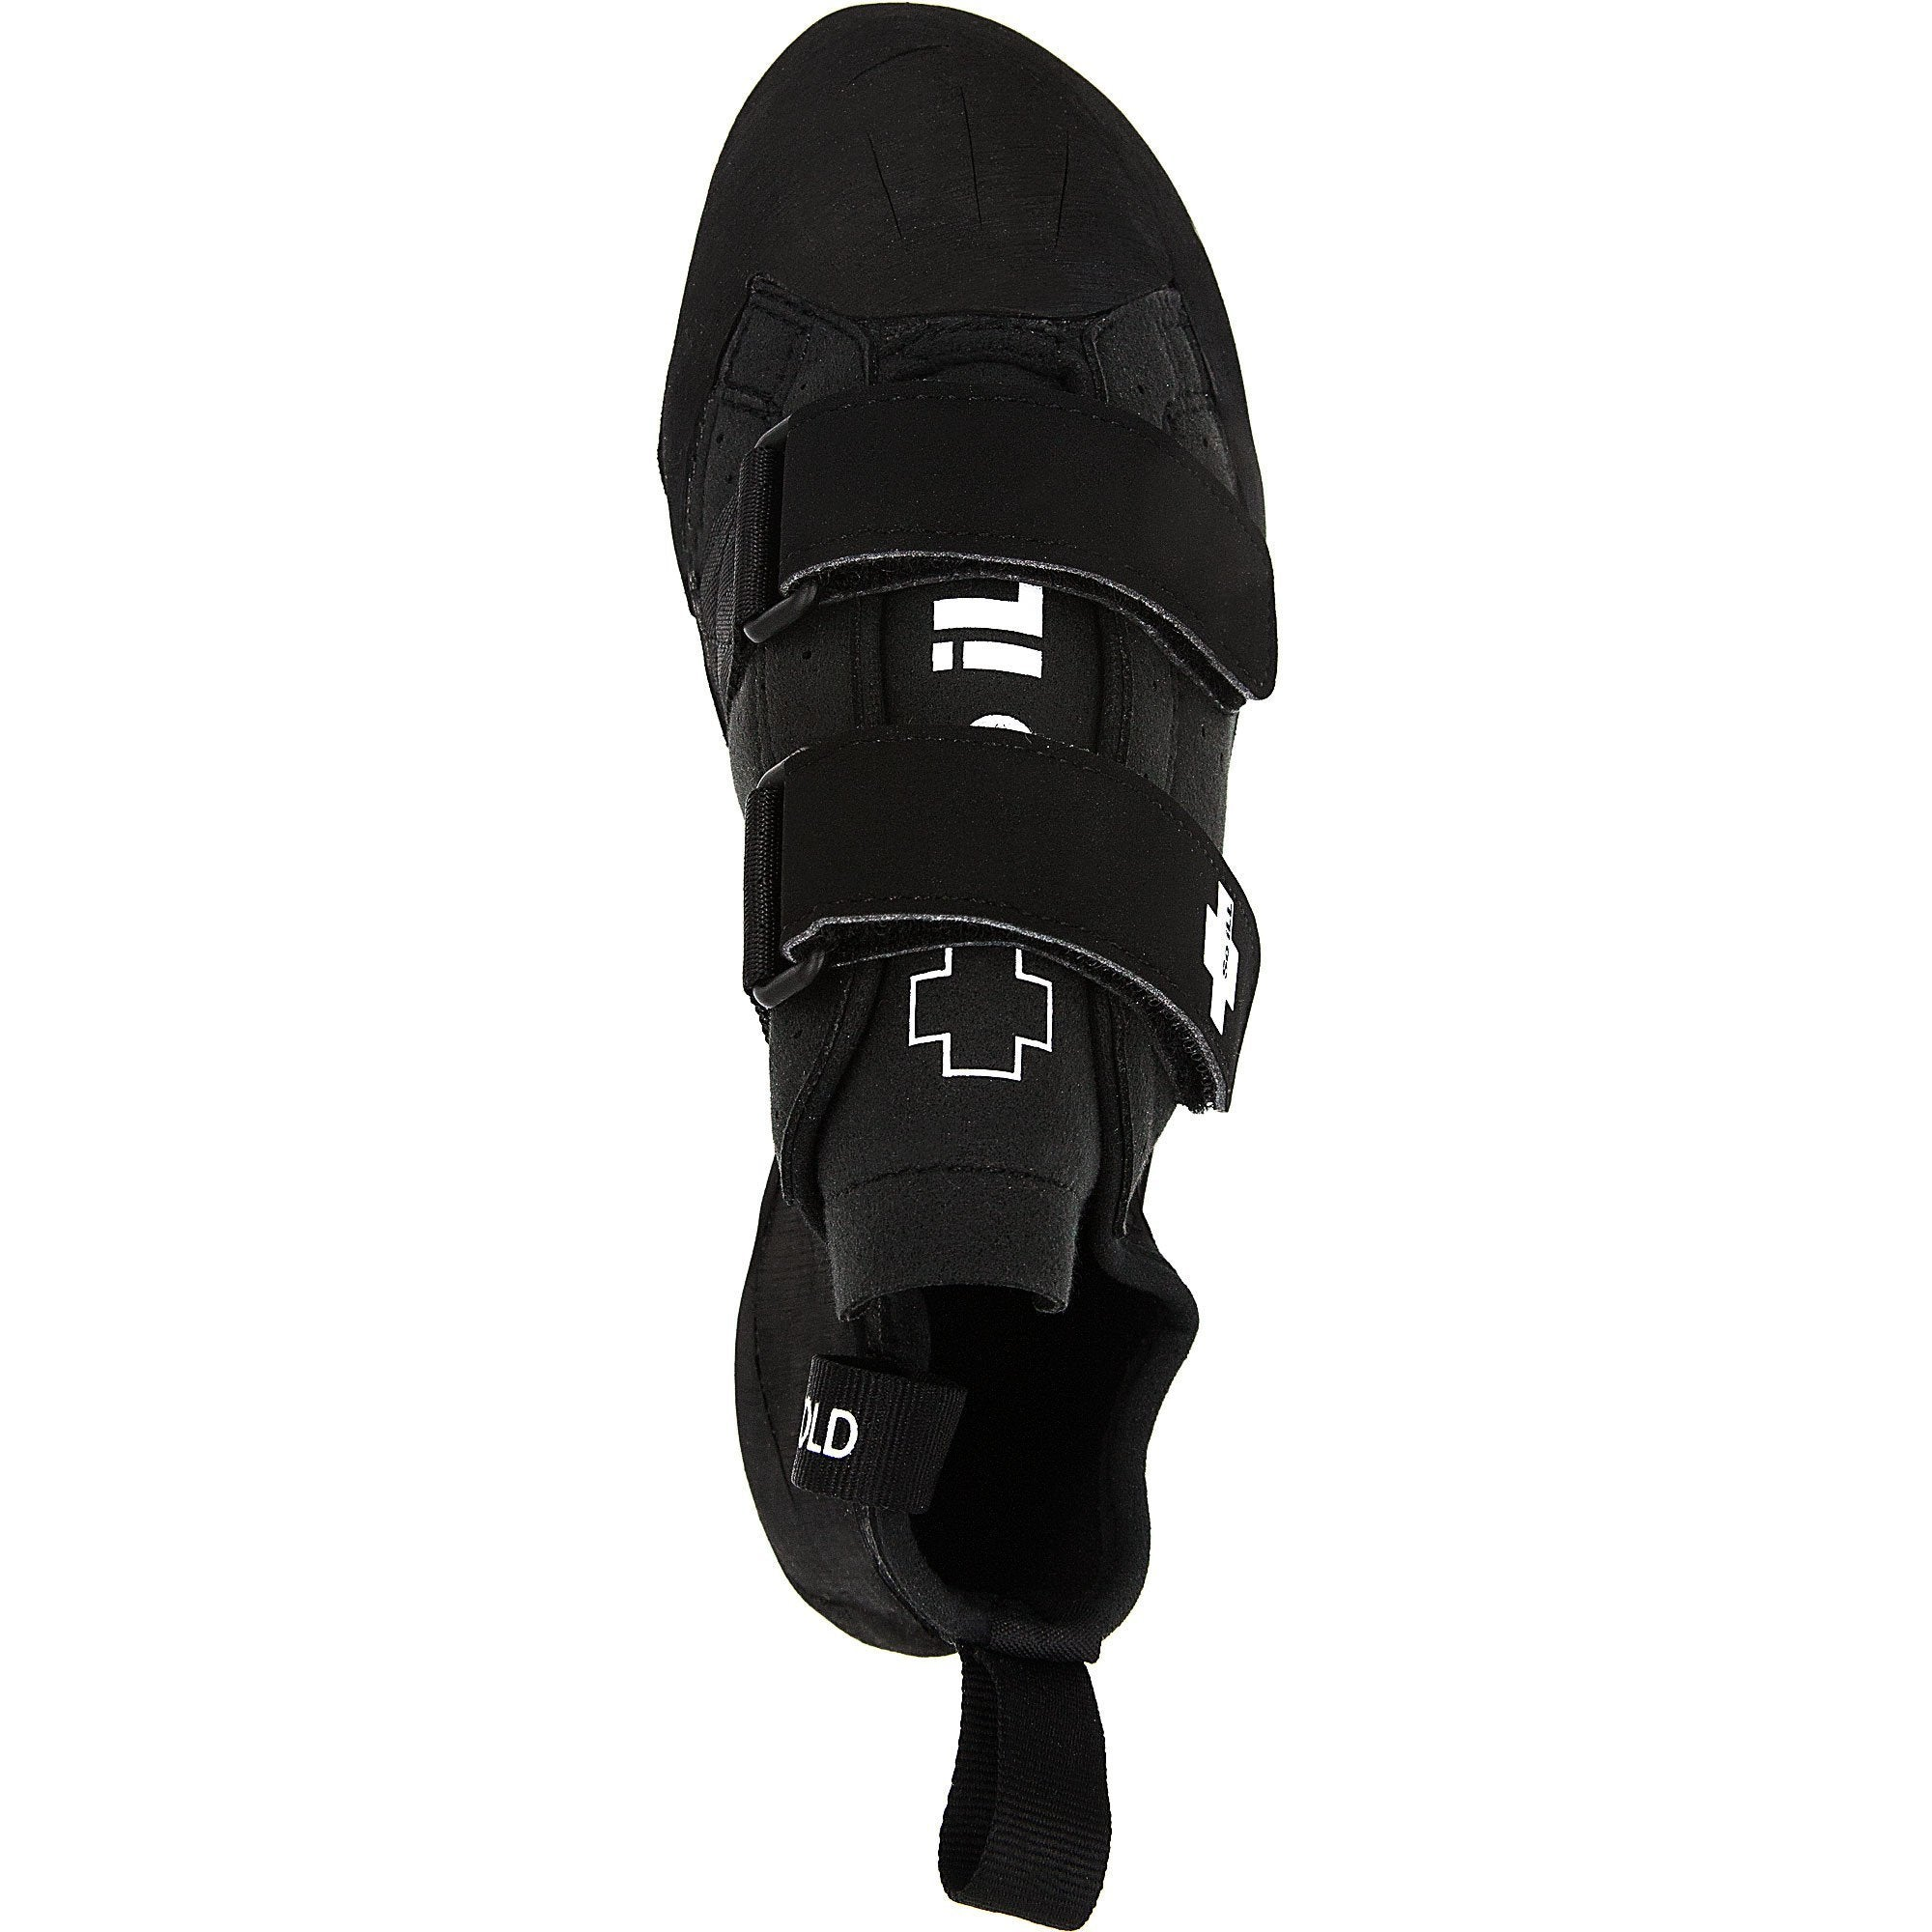 So iLL The Street Rock Climbing Shoe in Black – Top View